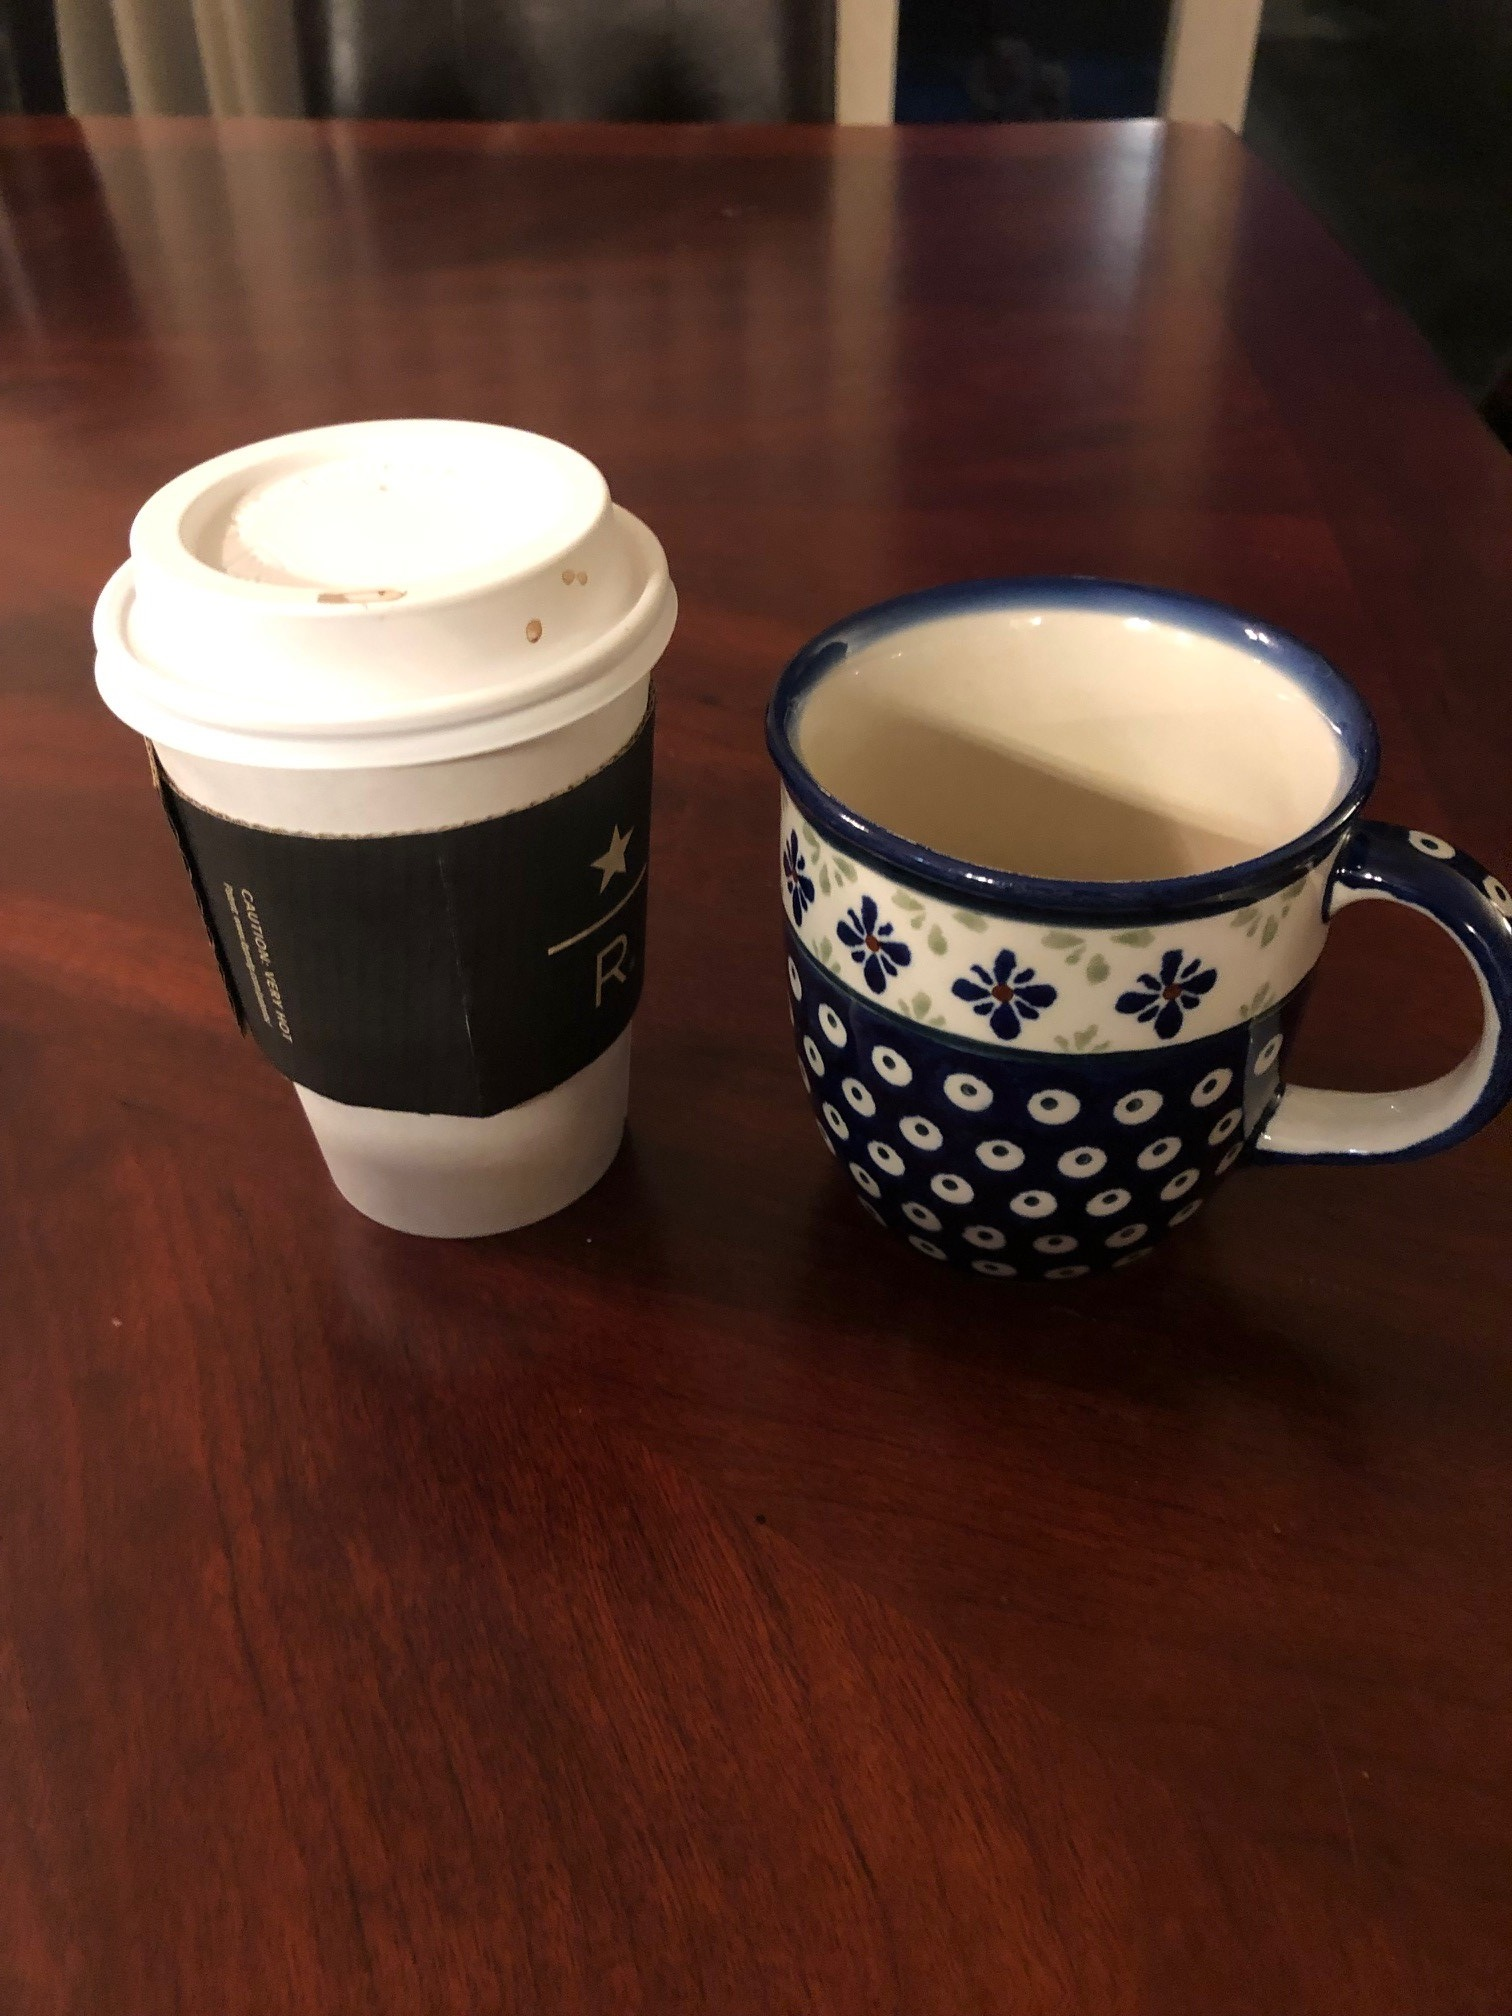 My daily coffee consumption would fill at least these two cups.